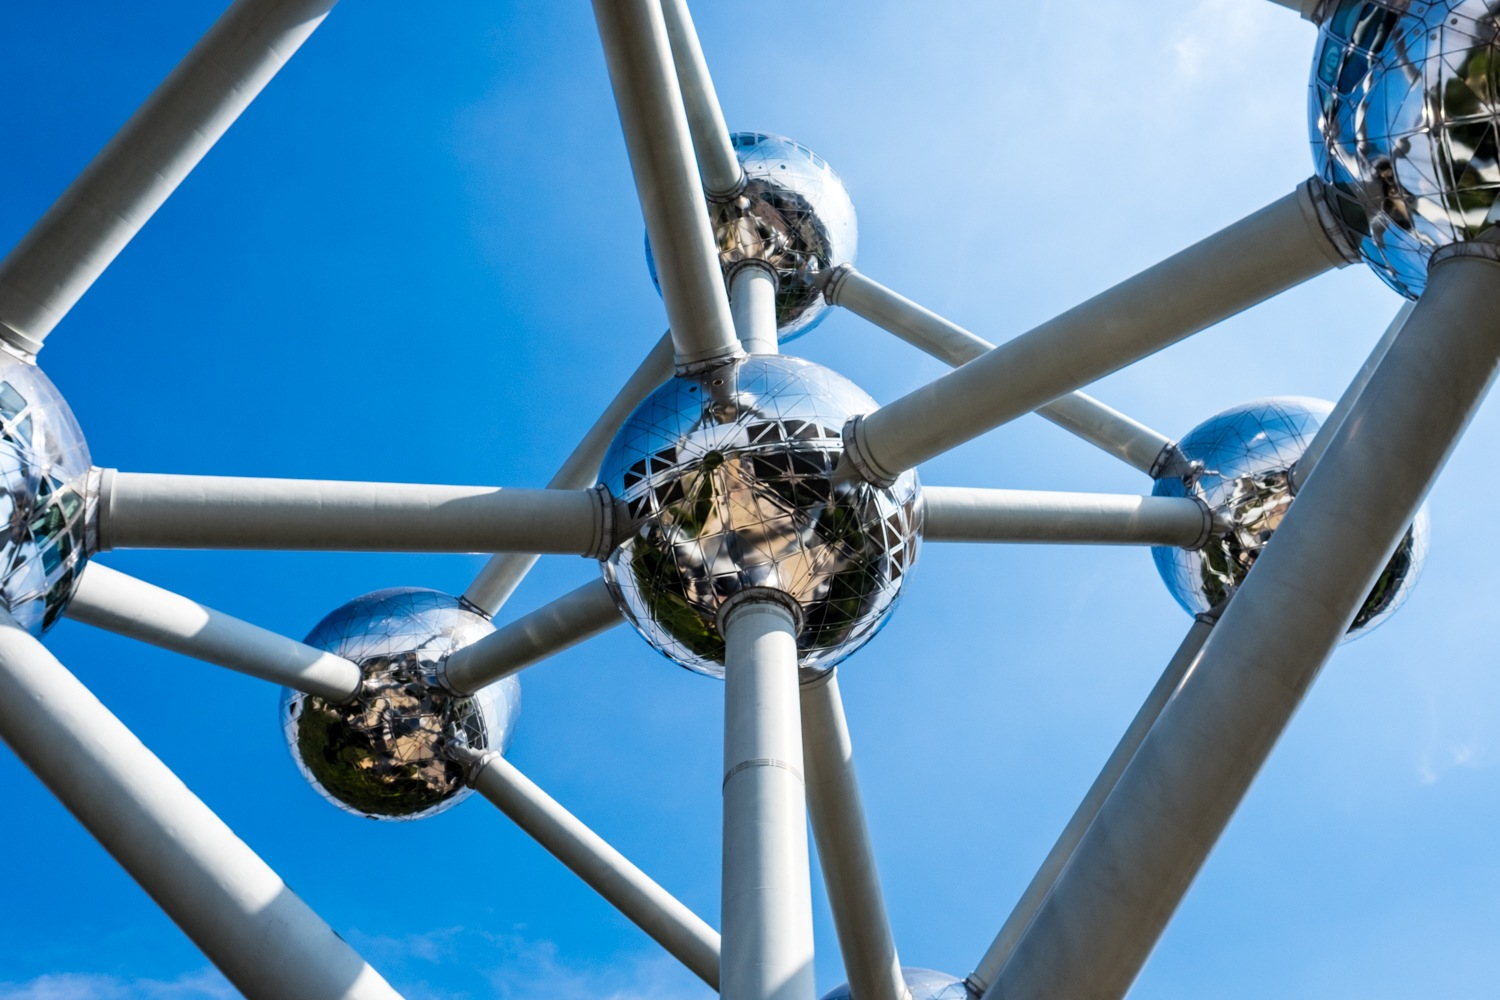 Through the atomium by Malc Burke